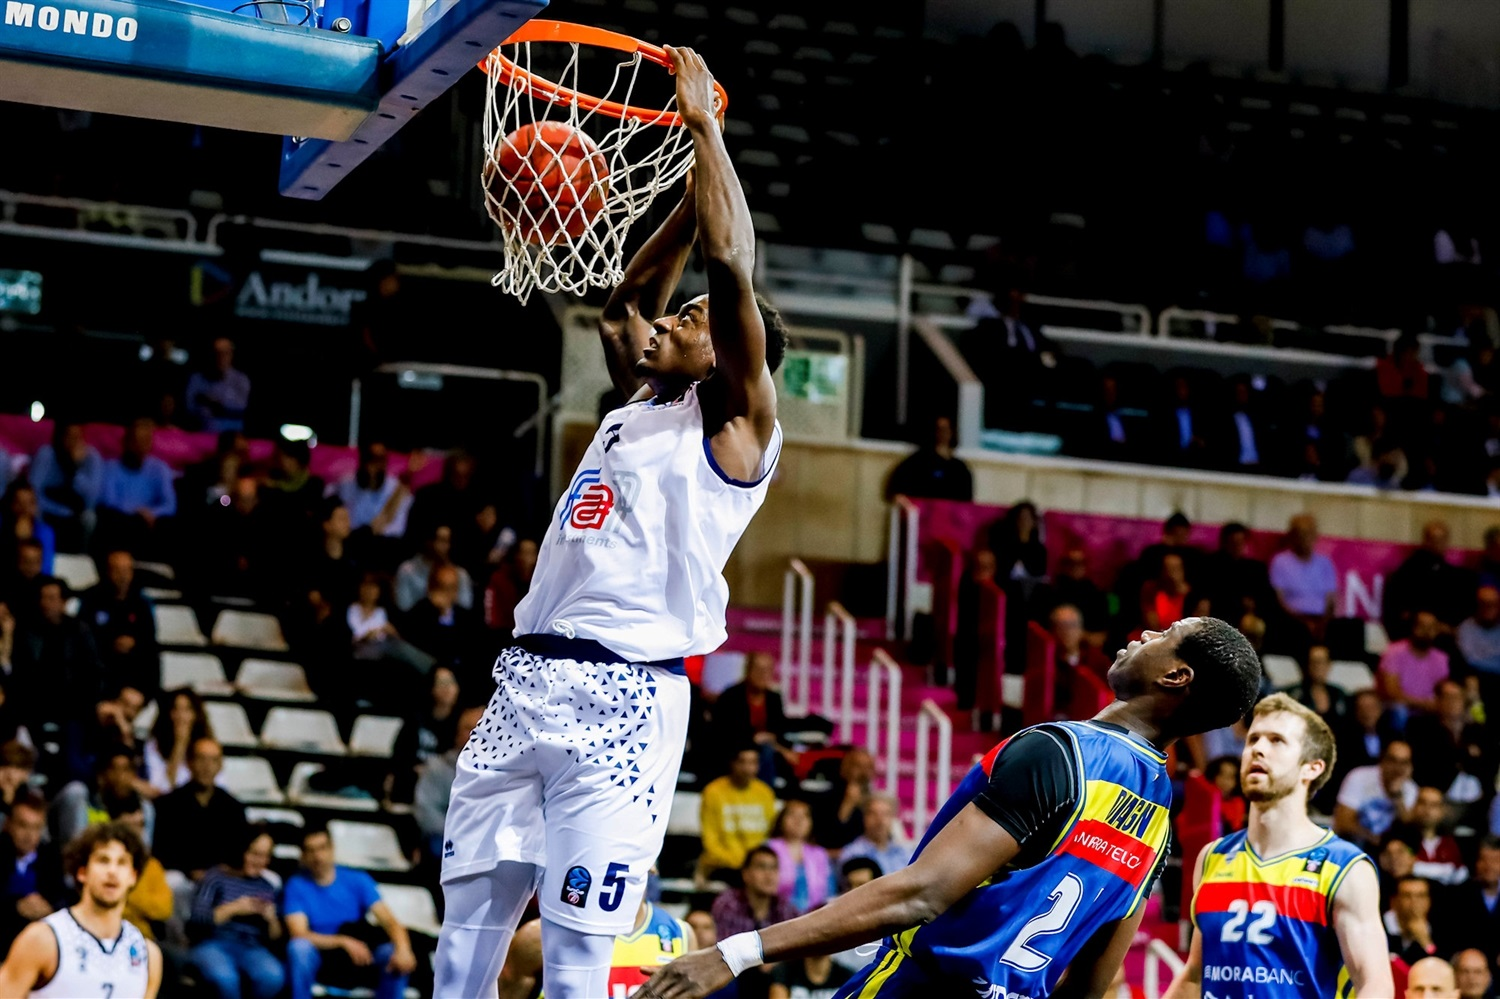 Awudu Abass - Germani Brescia Leonessa (photo Marti Imatge - Andorra) - EC18